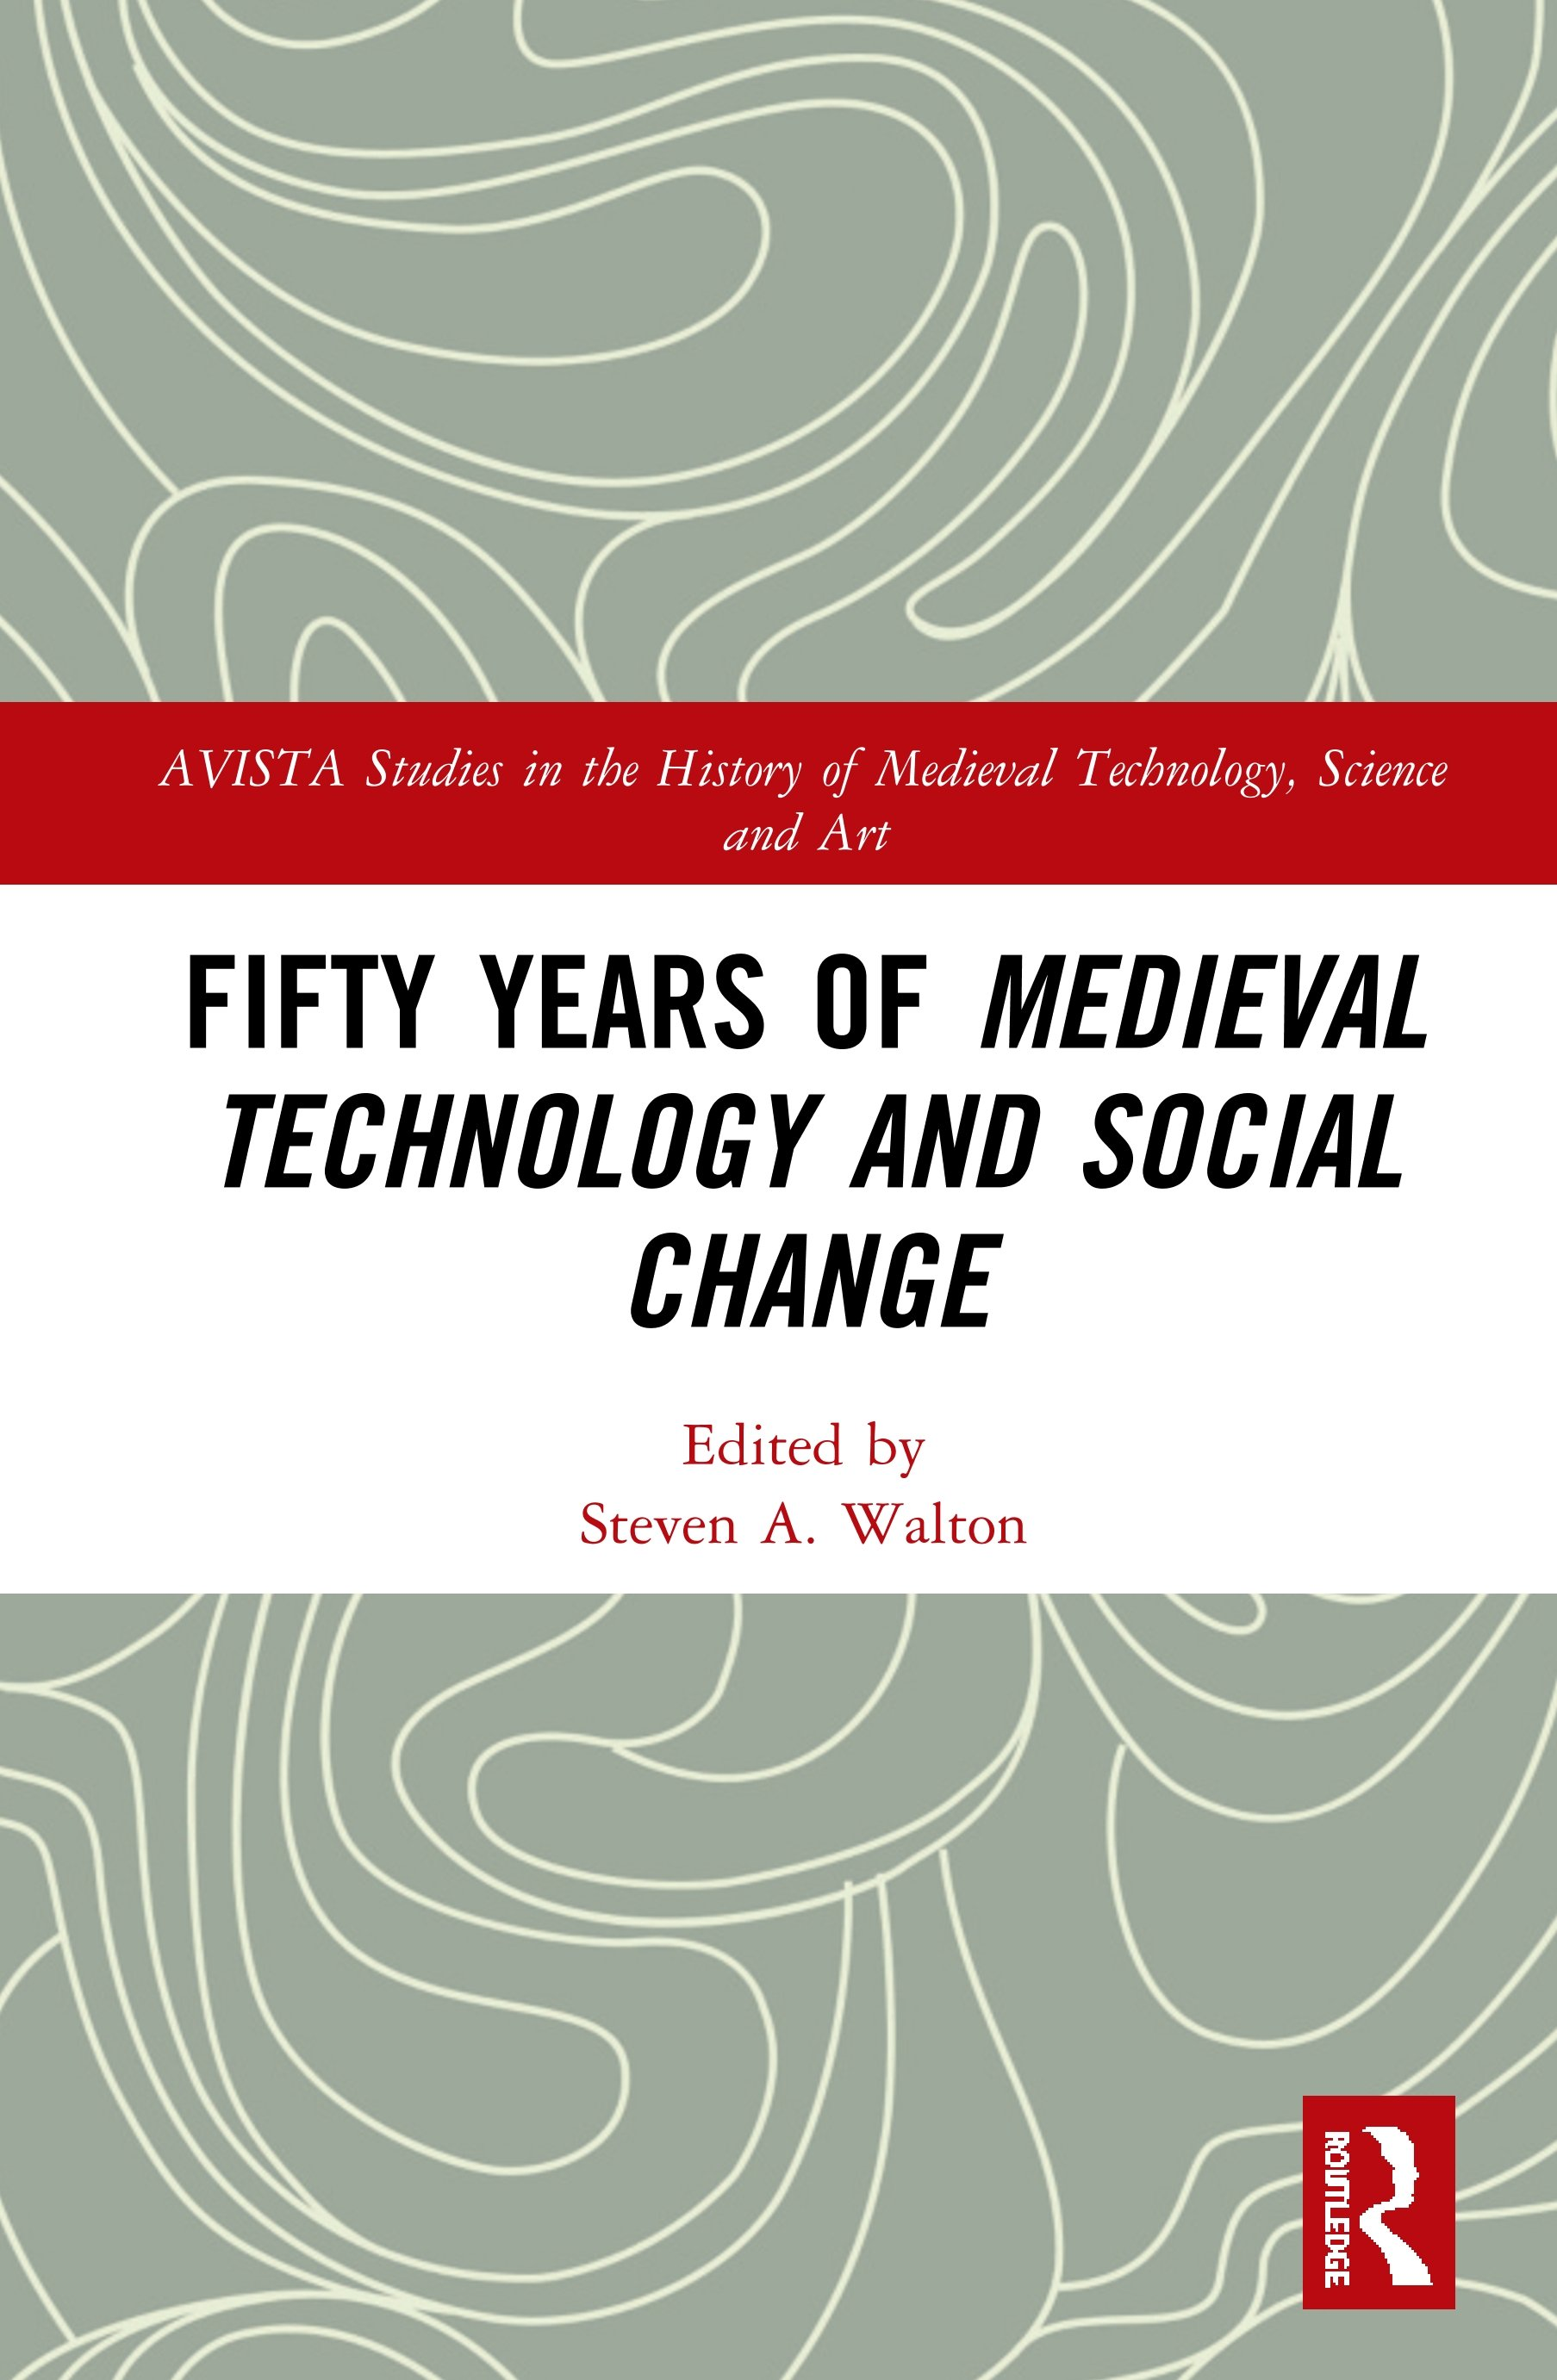 Fifty Years of Medieval Technology and Social Change book cover